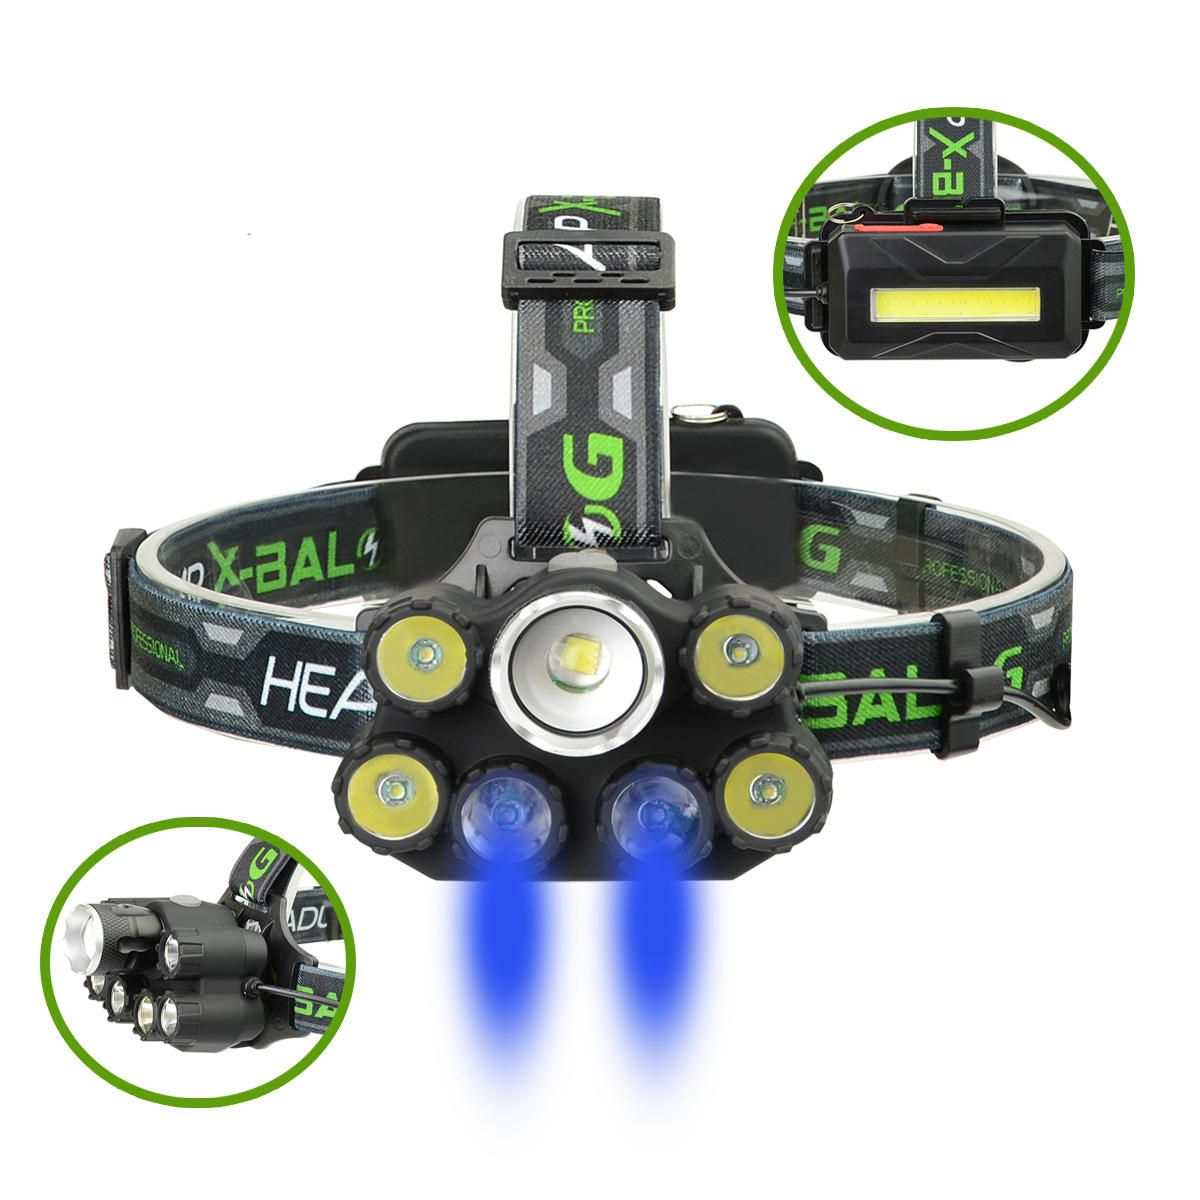 XANES BL T76 B6 2500LM T6 4XPE Blue LED 6 Modes Telescopic Zoom Cycling Hunting Camping Outdoor Headlamp COB Back Light USB Charging Interface